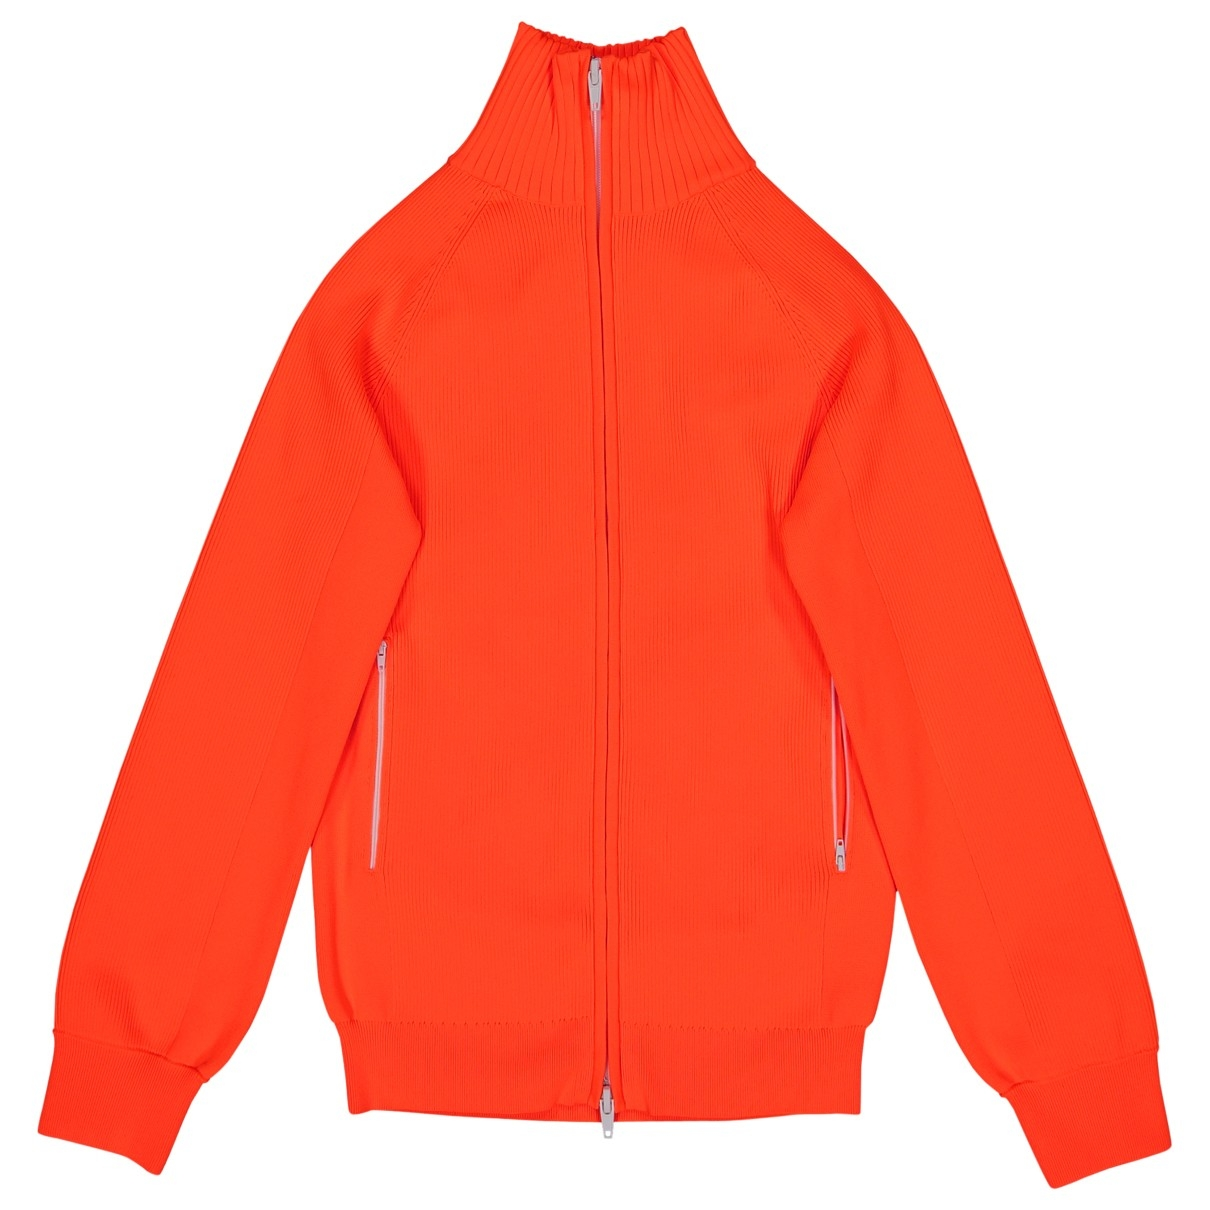 Tibi \N Orange Knitwear for Women S International